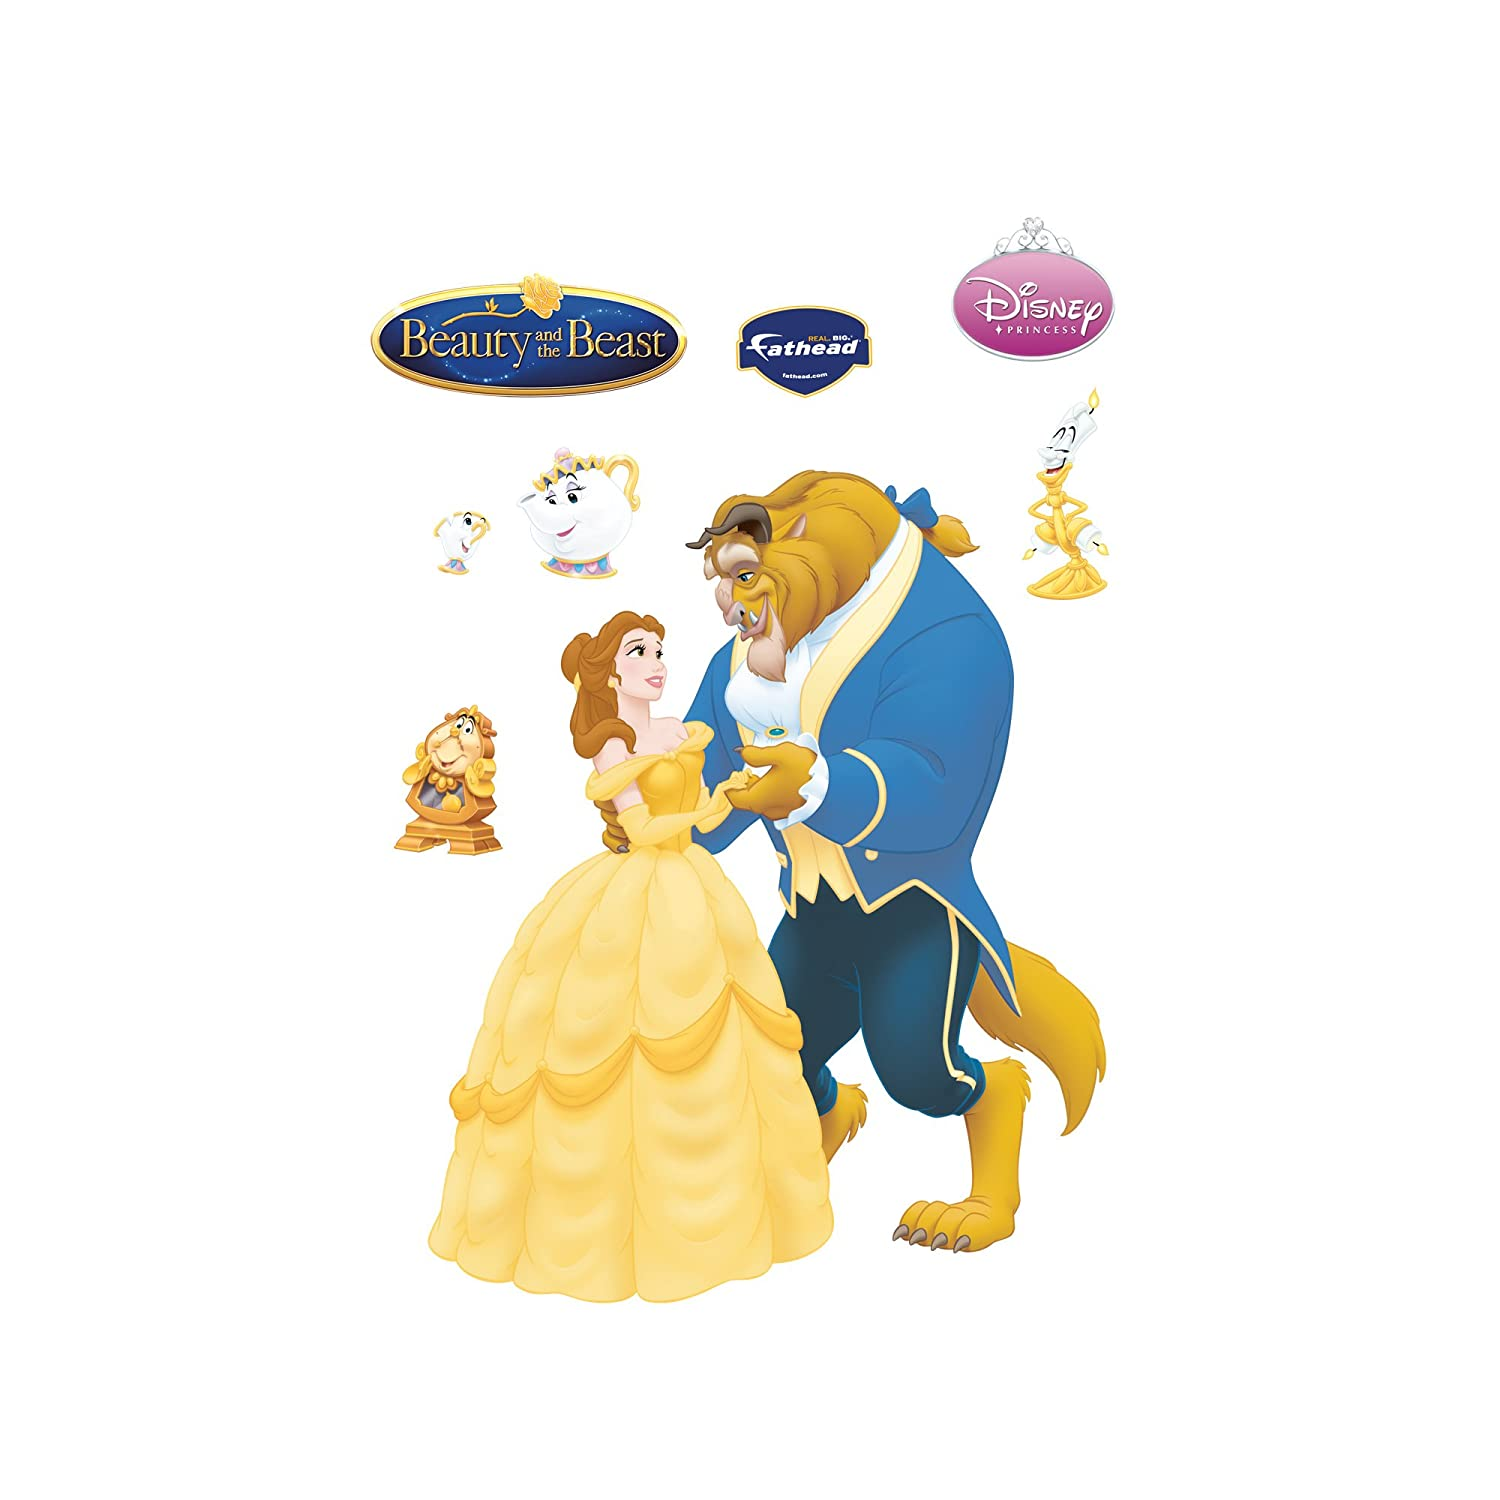 Amazon.com: Disney Beauty and the Beast Wall Graphic: Home & Kitchen